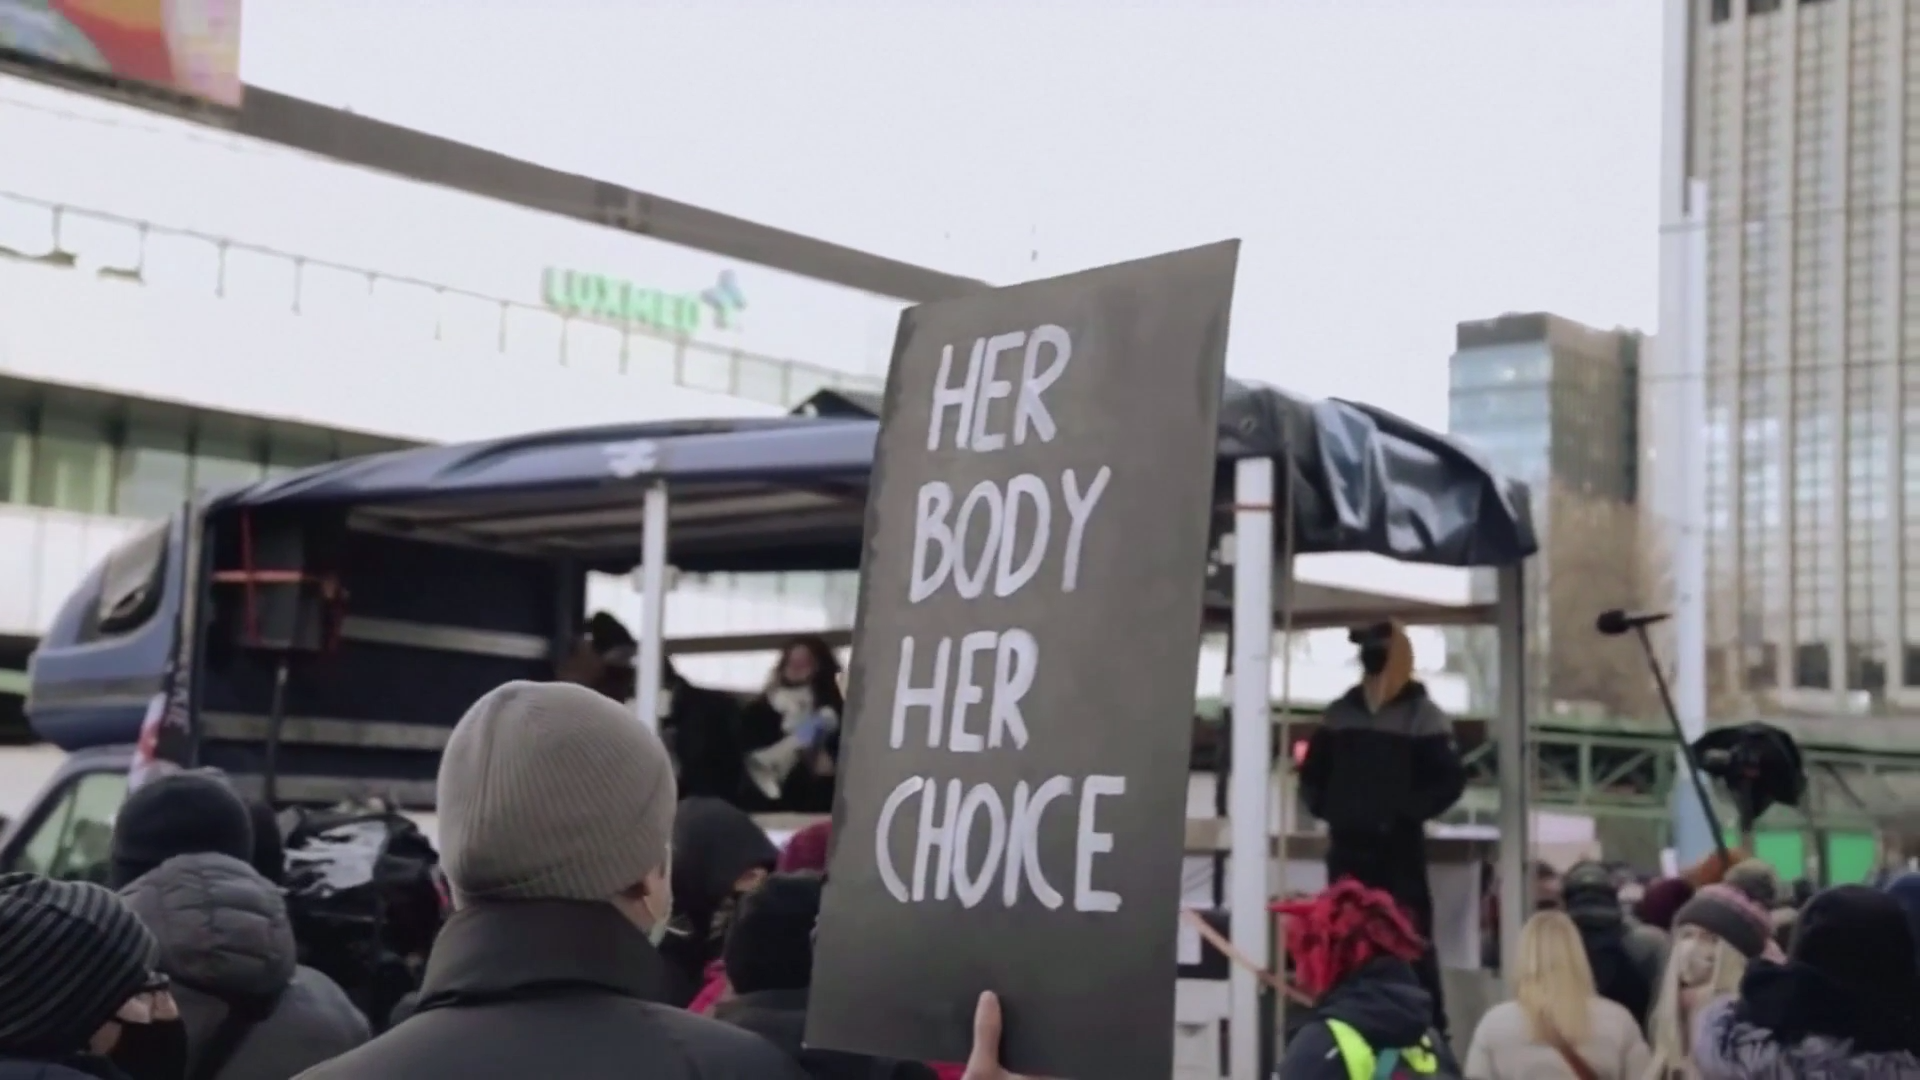 Protests in Poland over near-total abortion ban - channel 4